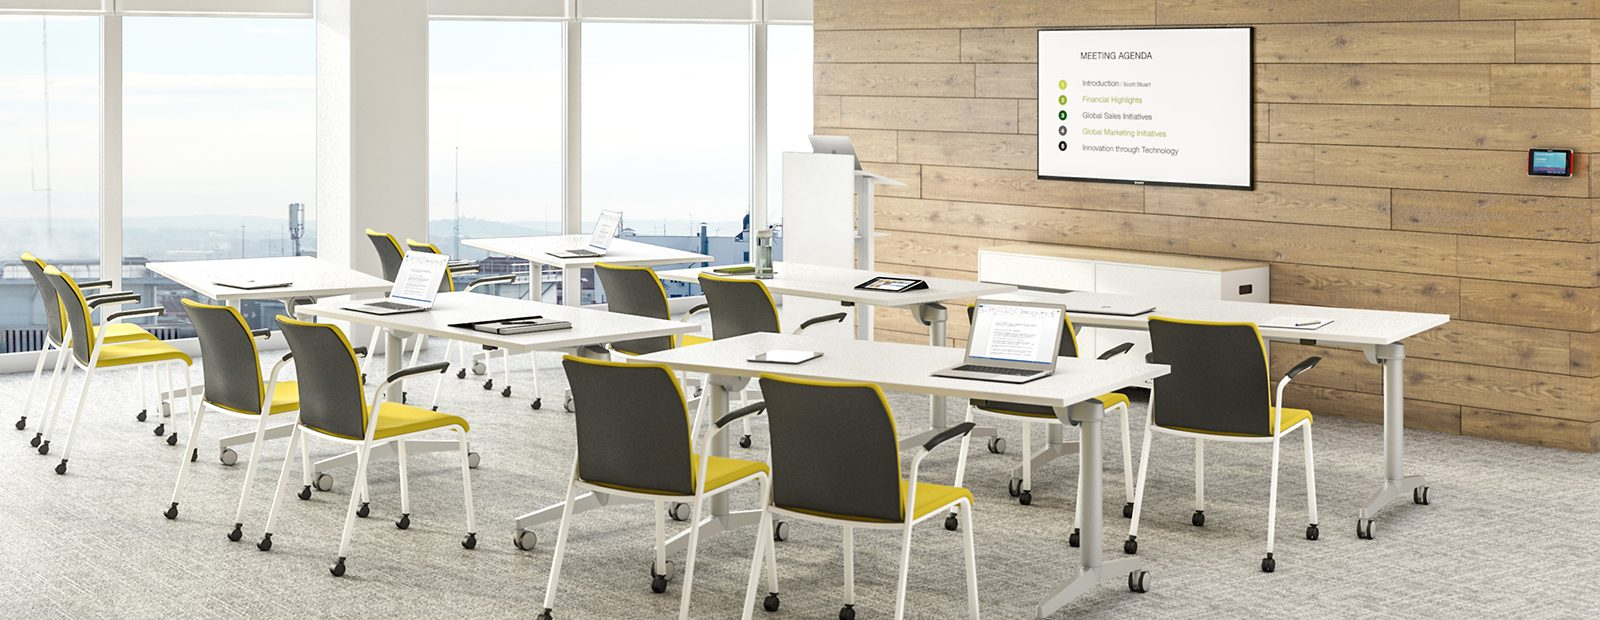 Training and Learning Workspace gallery image